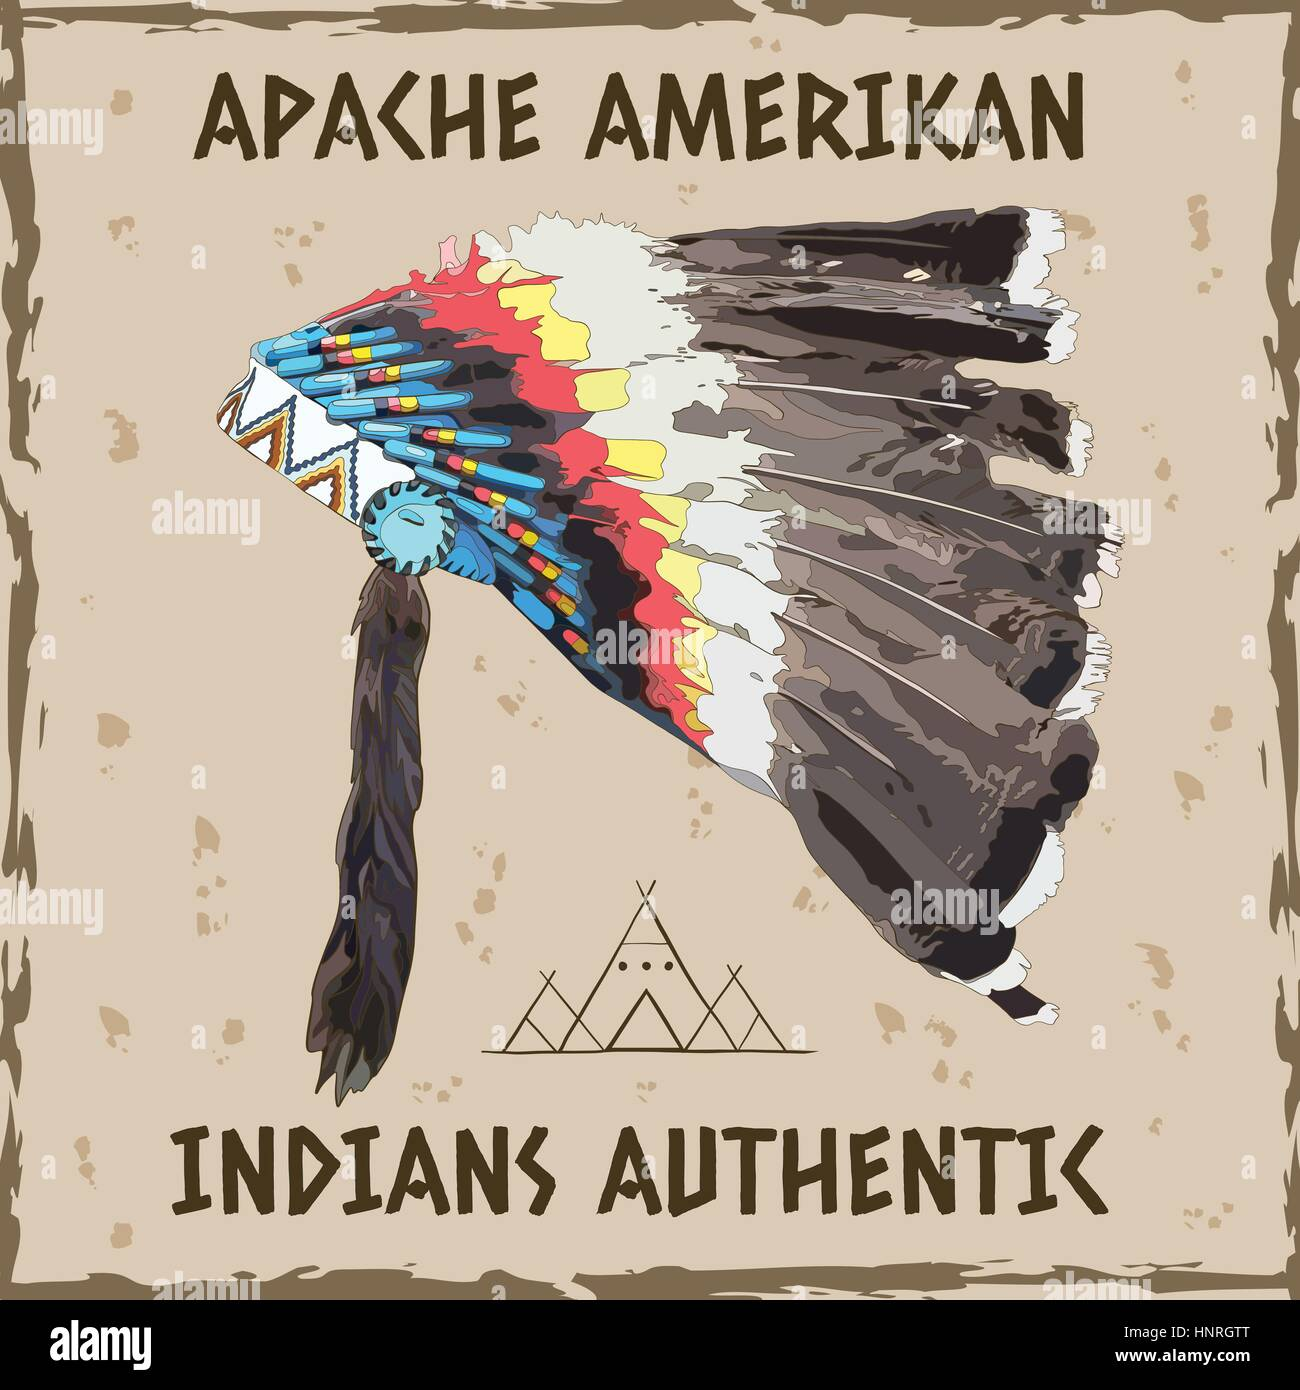 Vector illustration, hand drawing of a headdress Indian chief - Stock Image